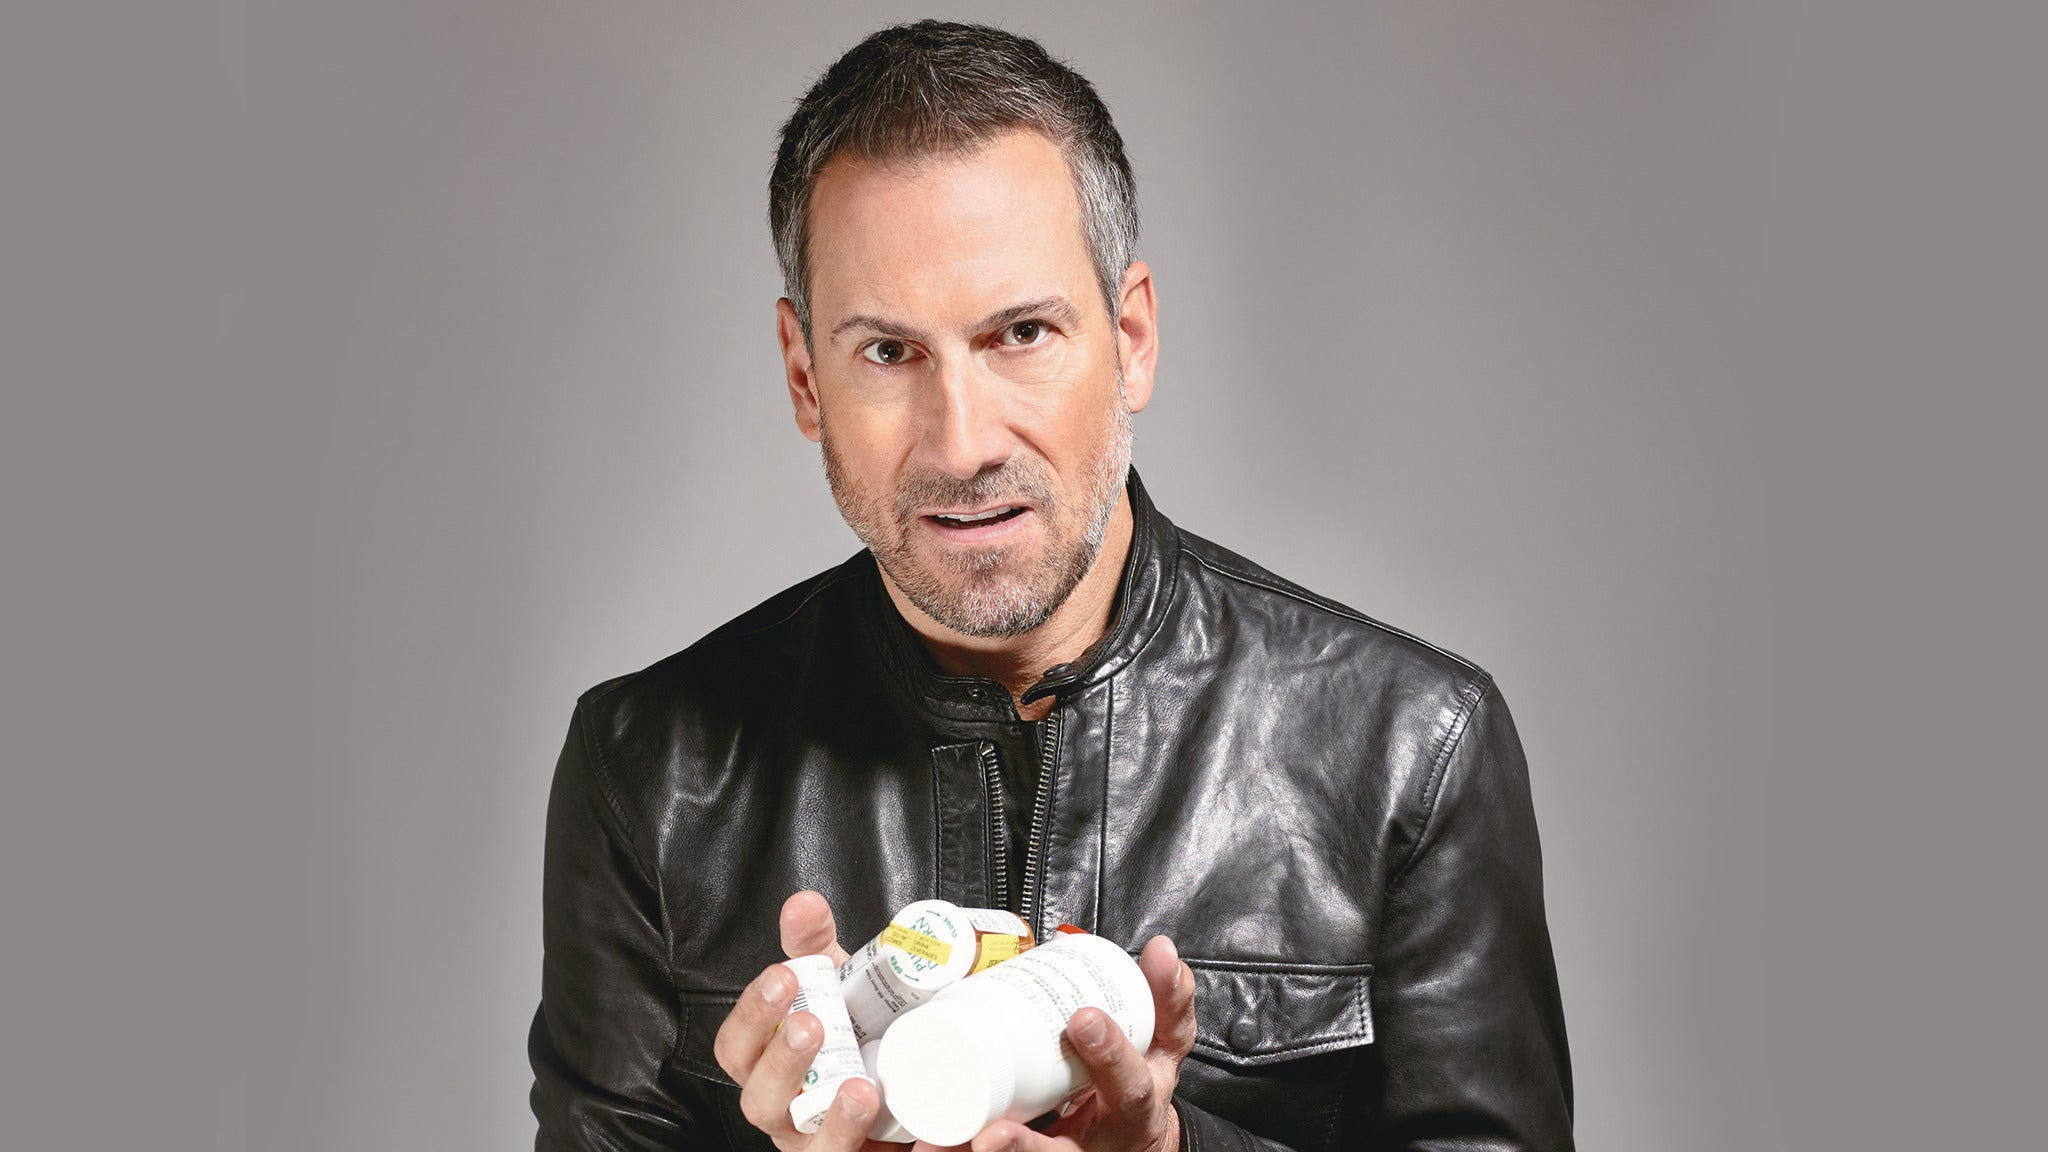 Joe Matarese at Punch Line Philly